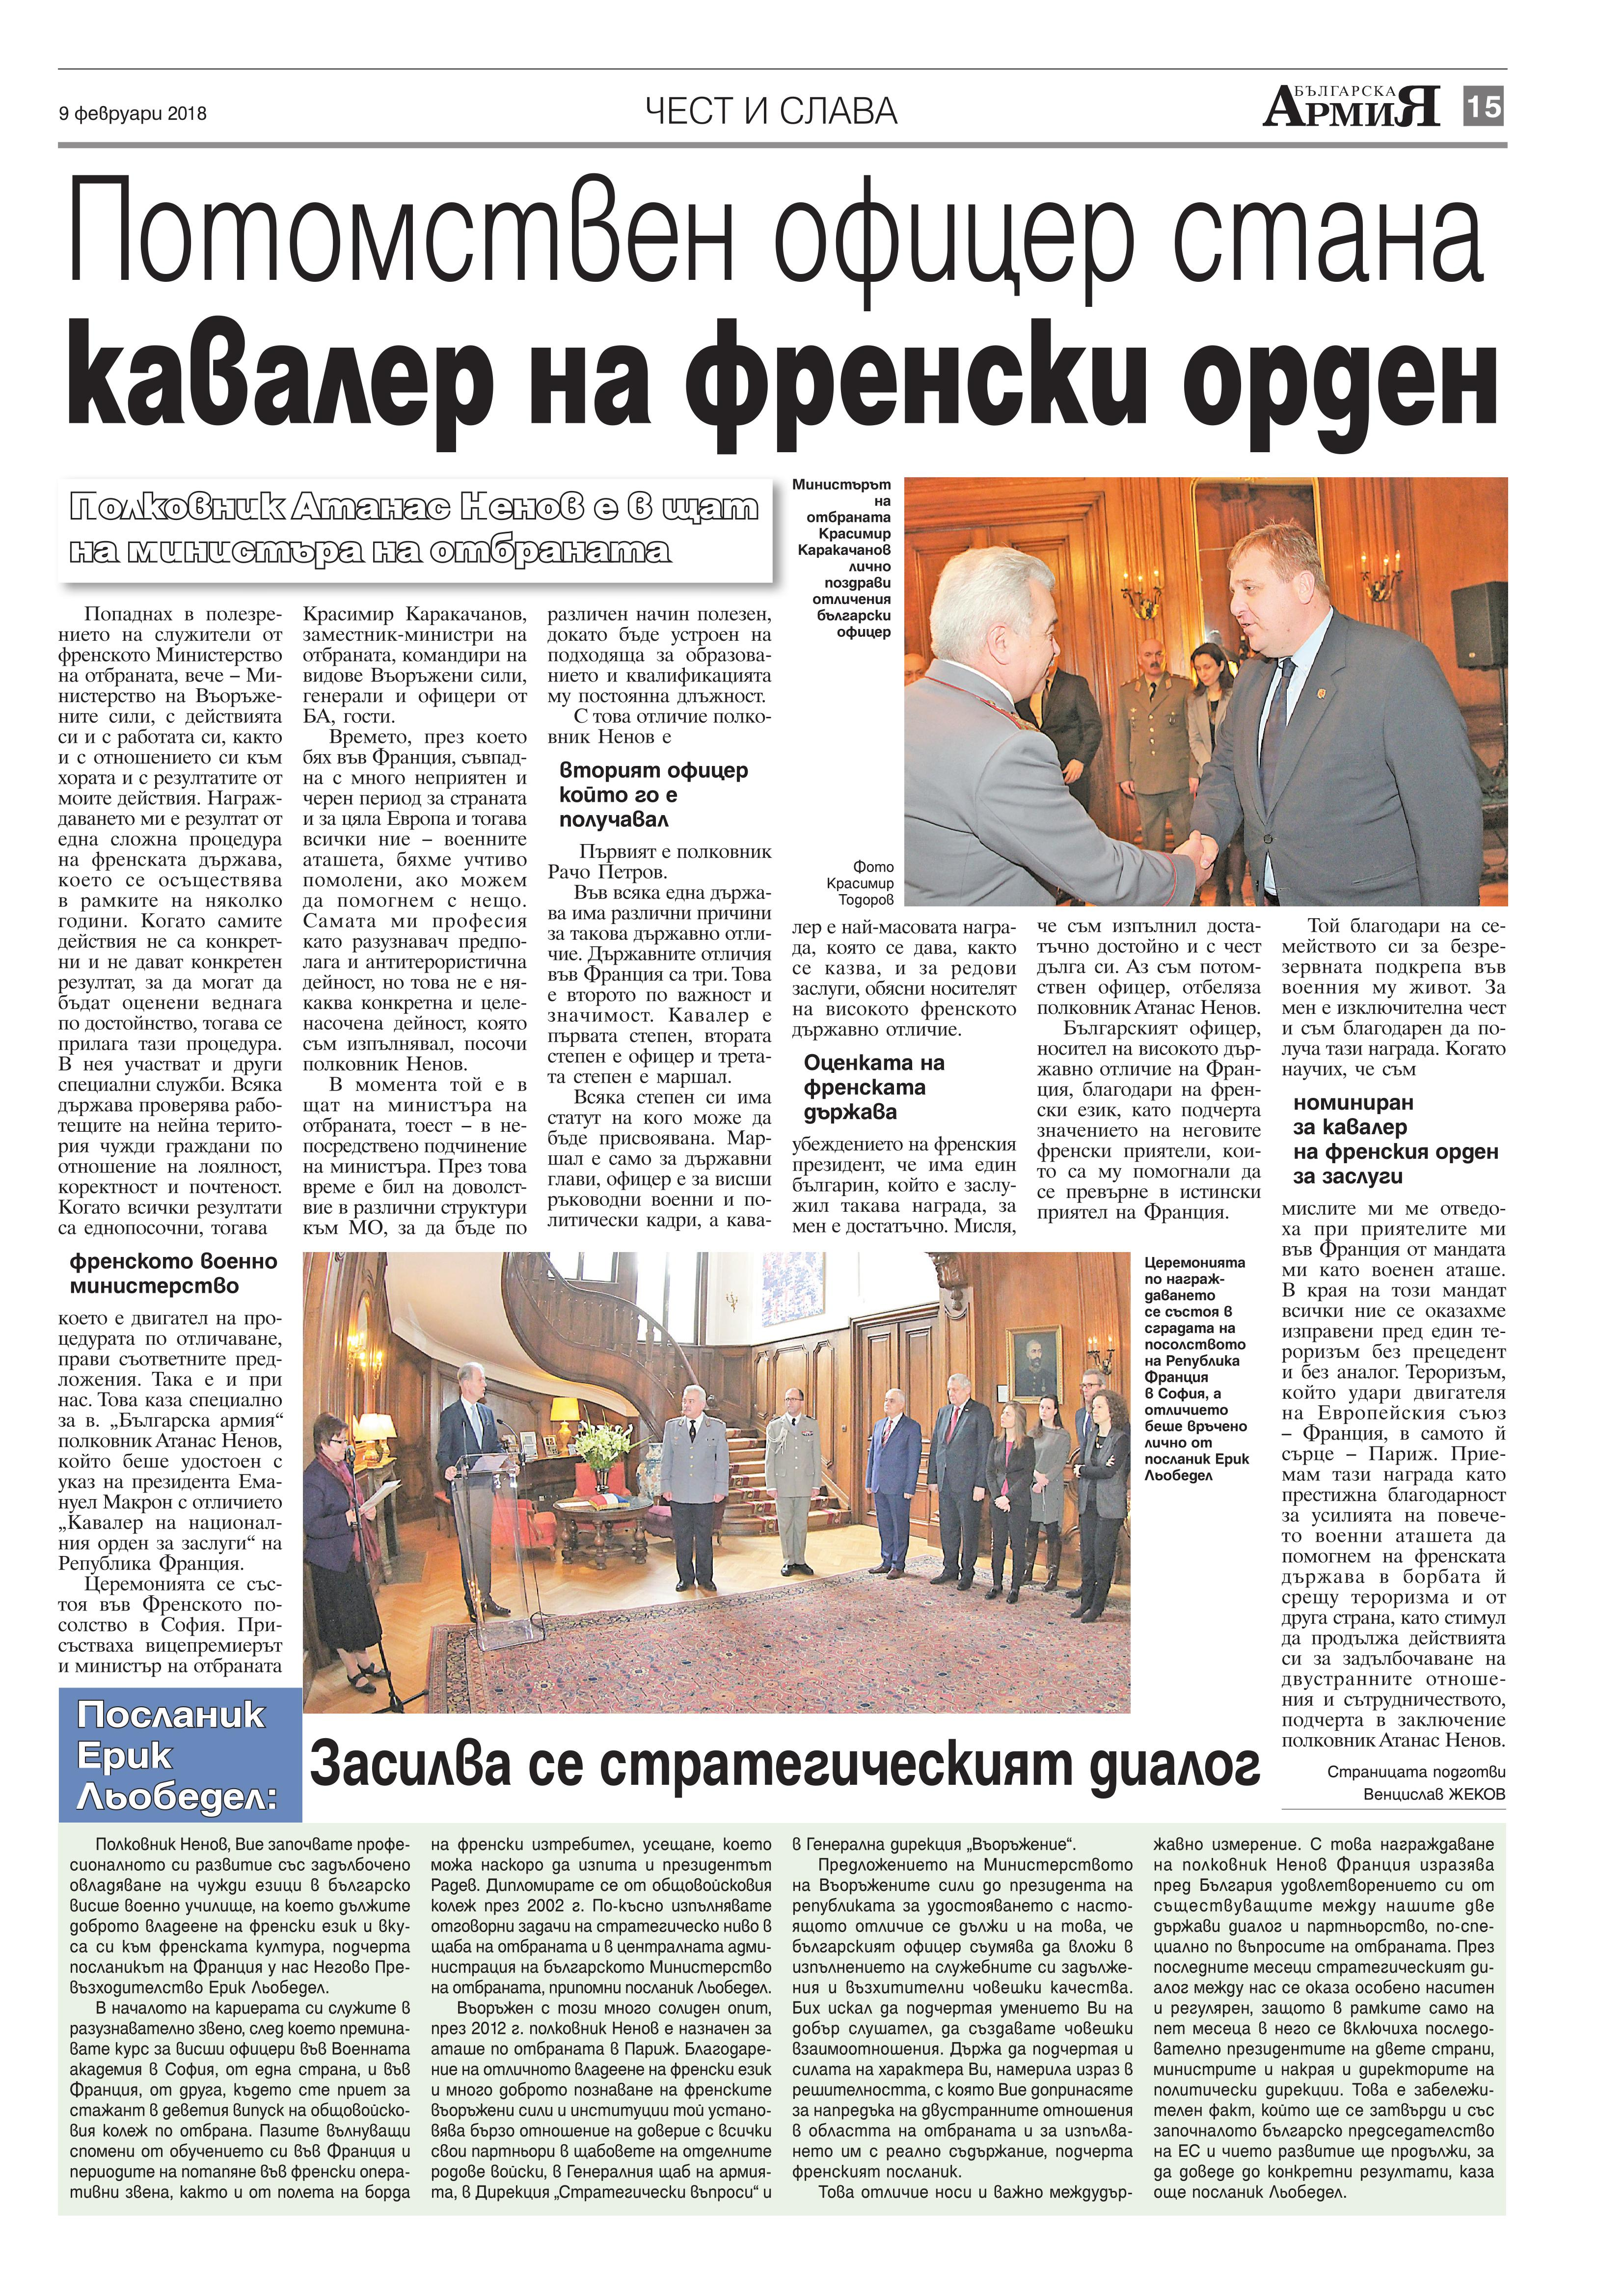 https://armymedia.bg/wp-content/uploads/2015/06/15.page1_-39.jpg